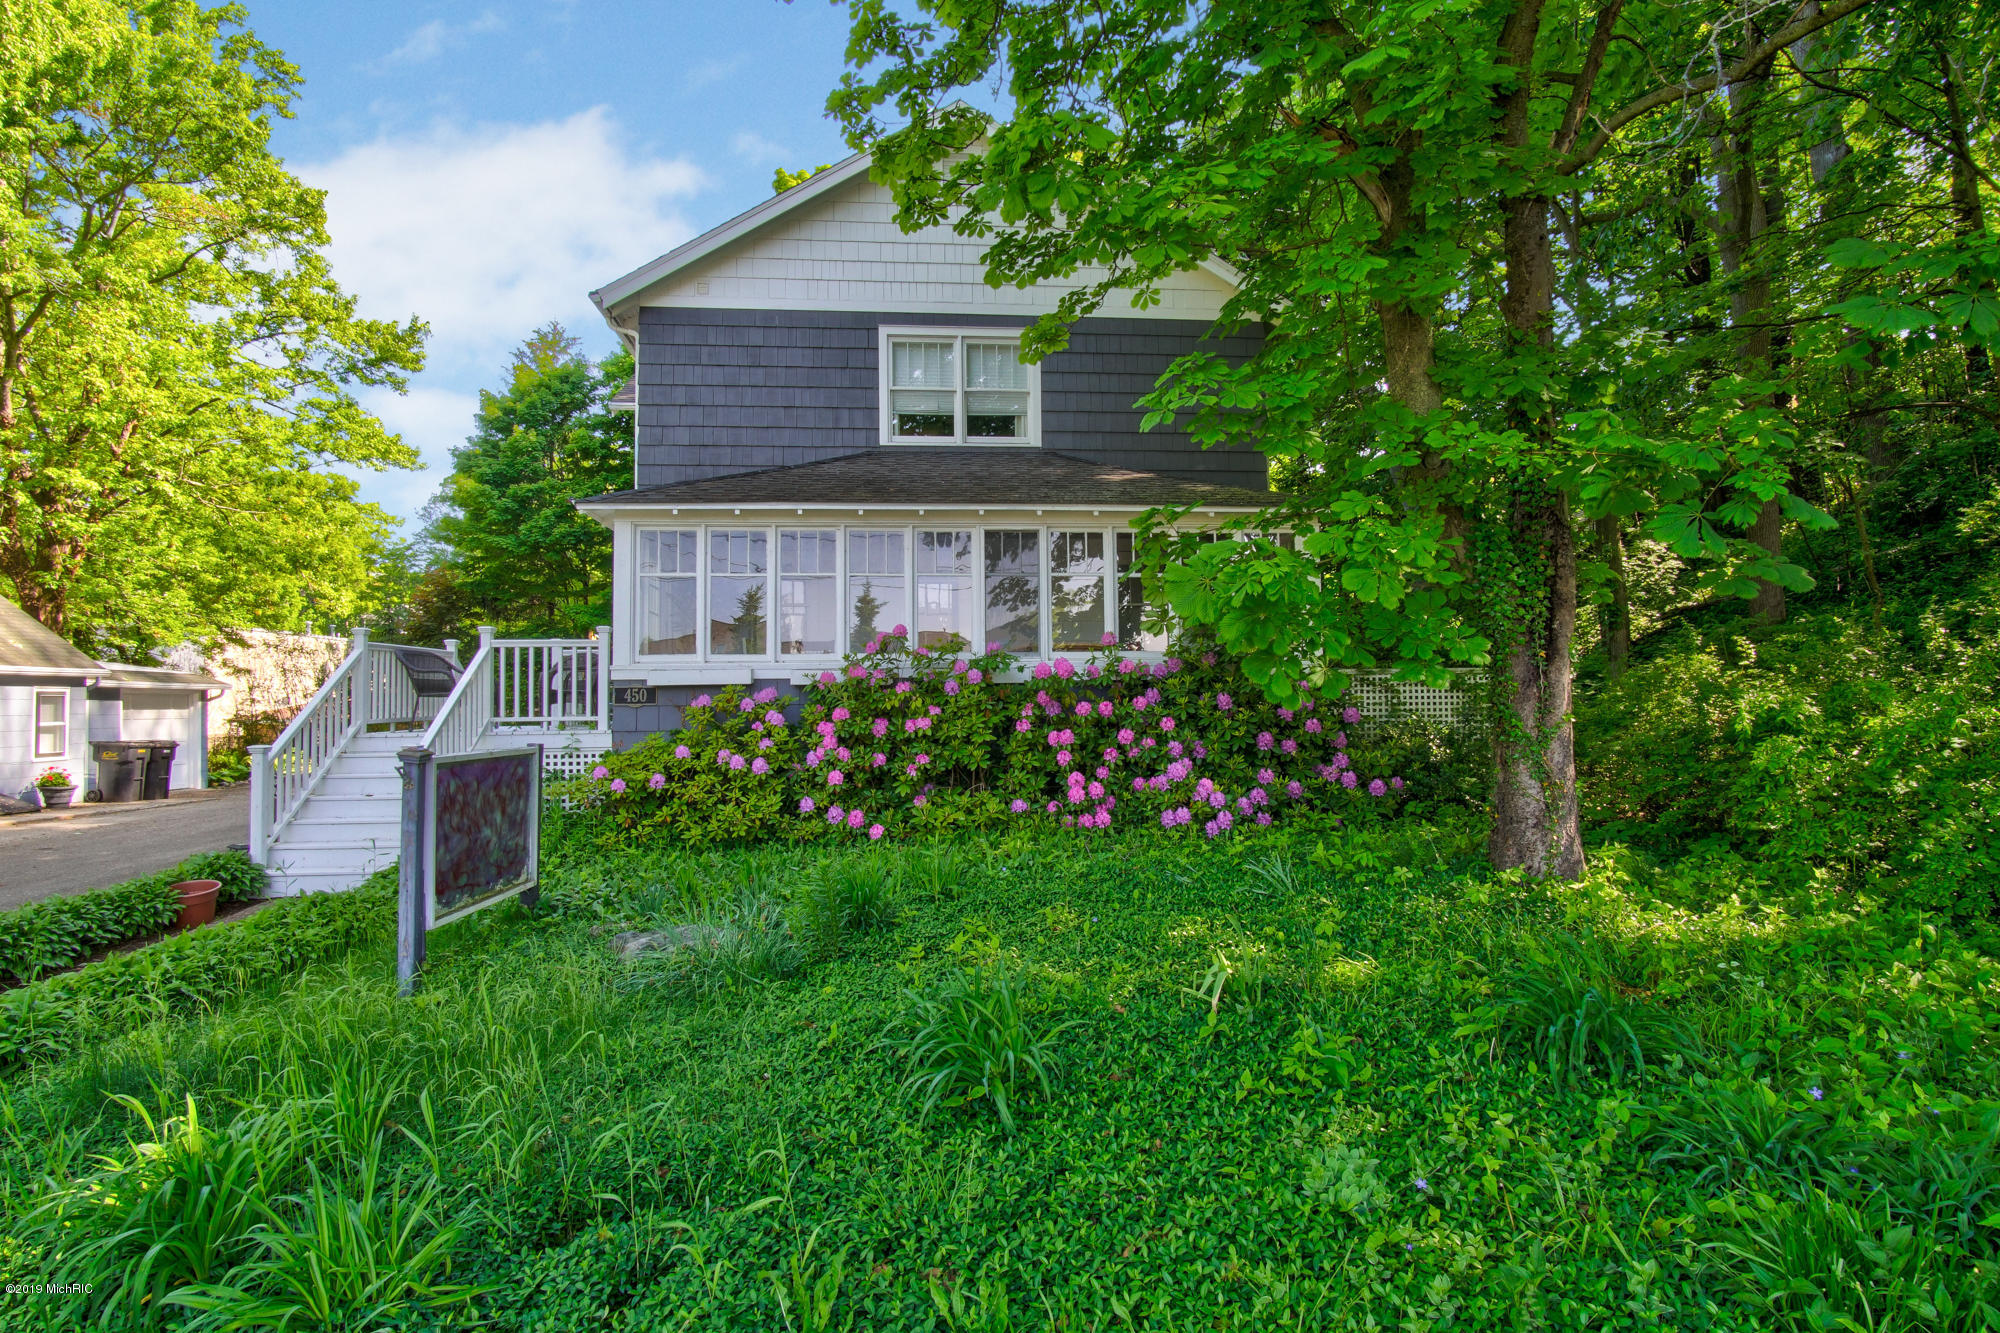 Photo for 450 Culver Street, Saugatuck, MI 49453 (MLS # 18056547)